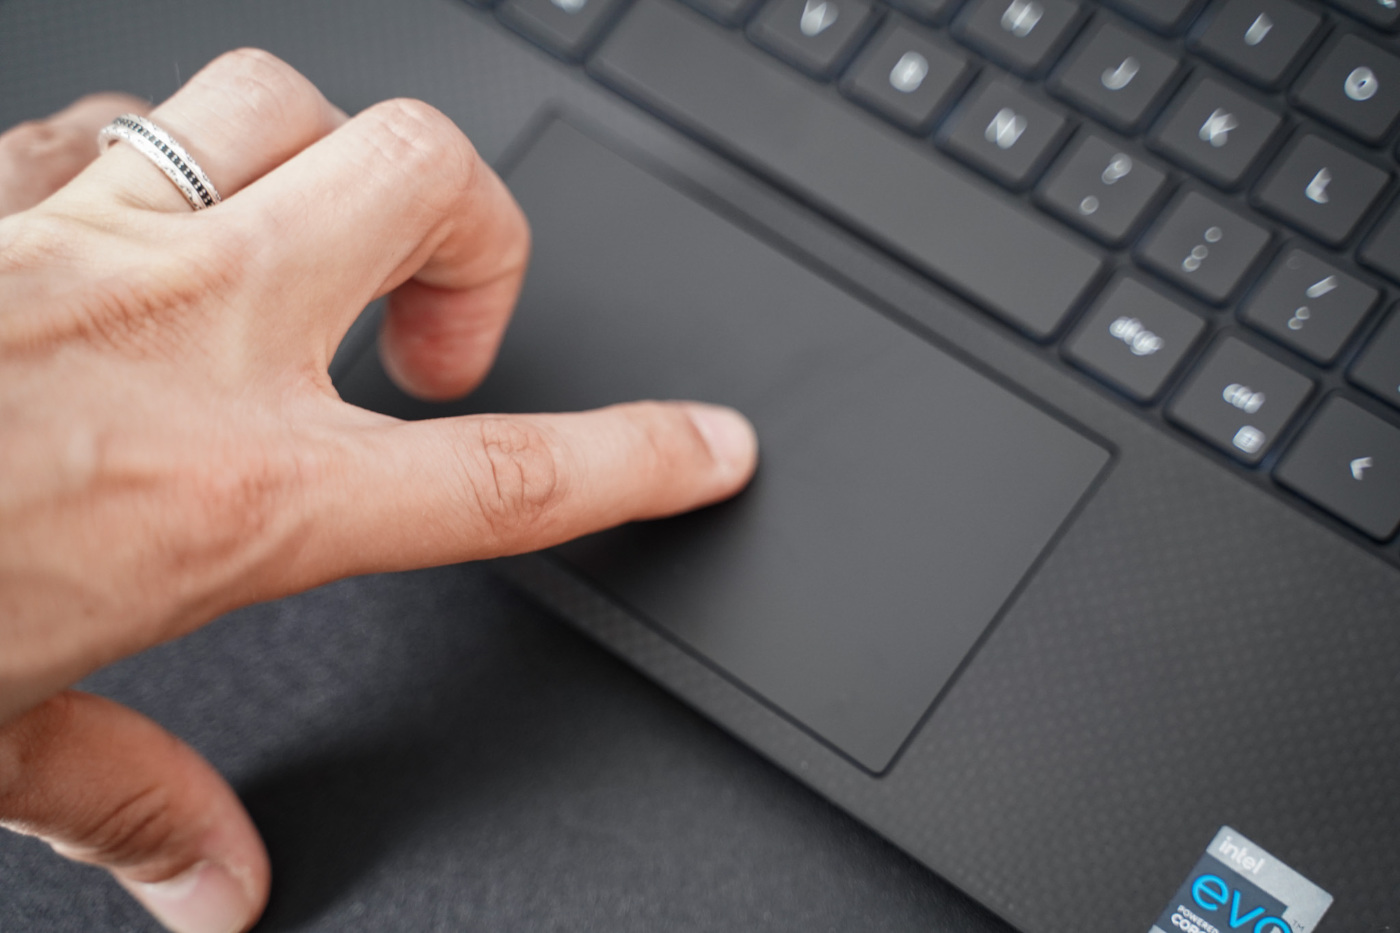 test dell ups 13 9310 trackpad